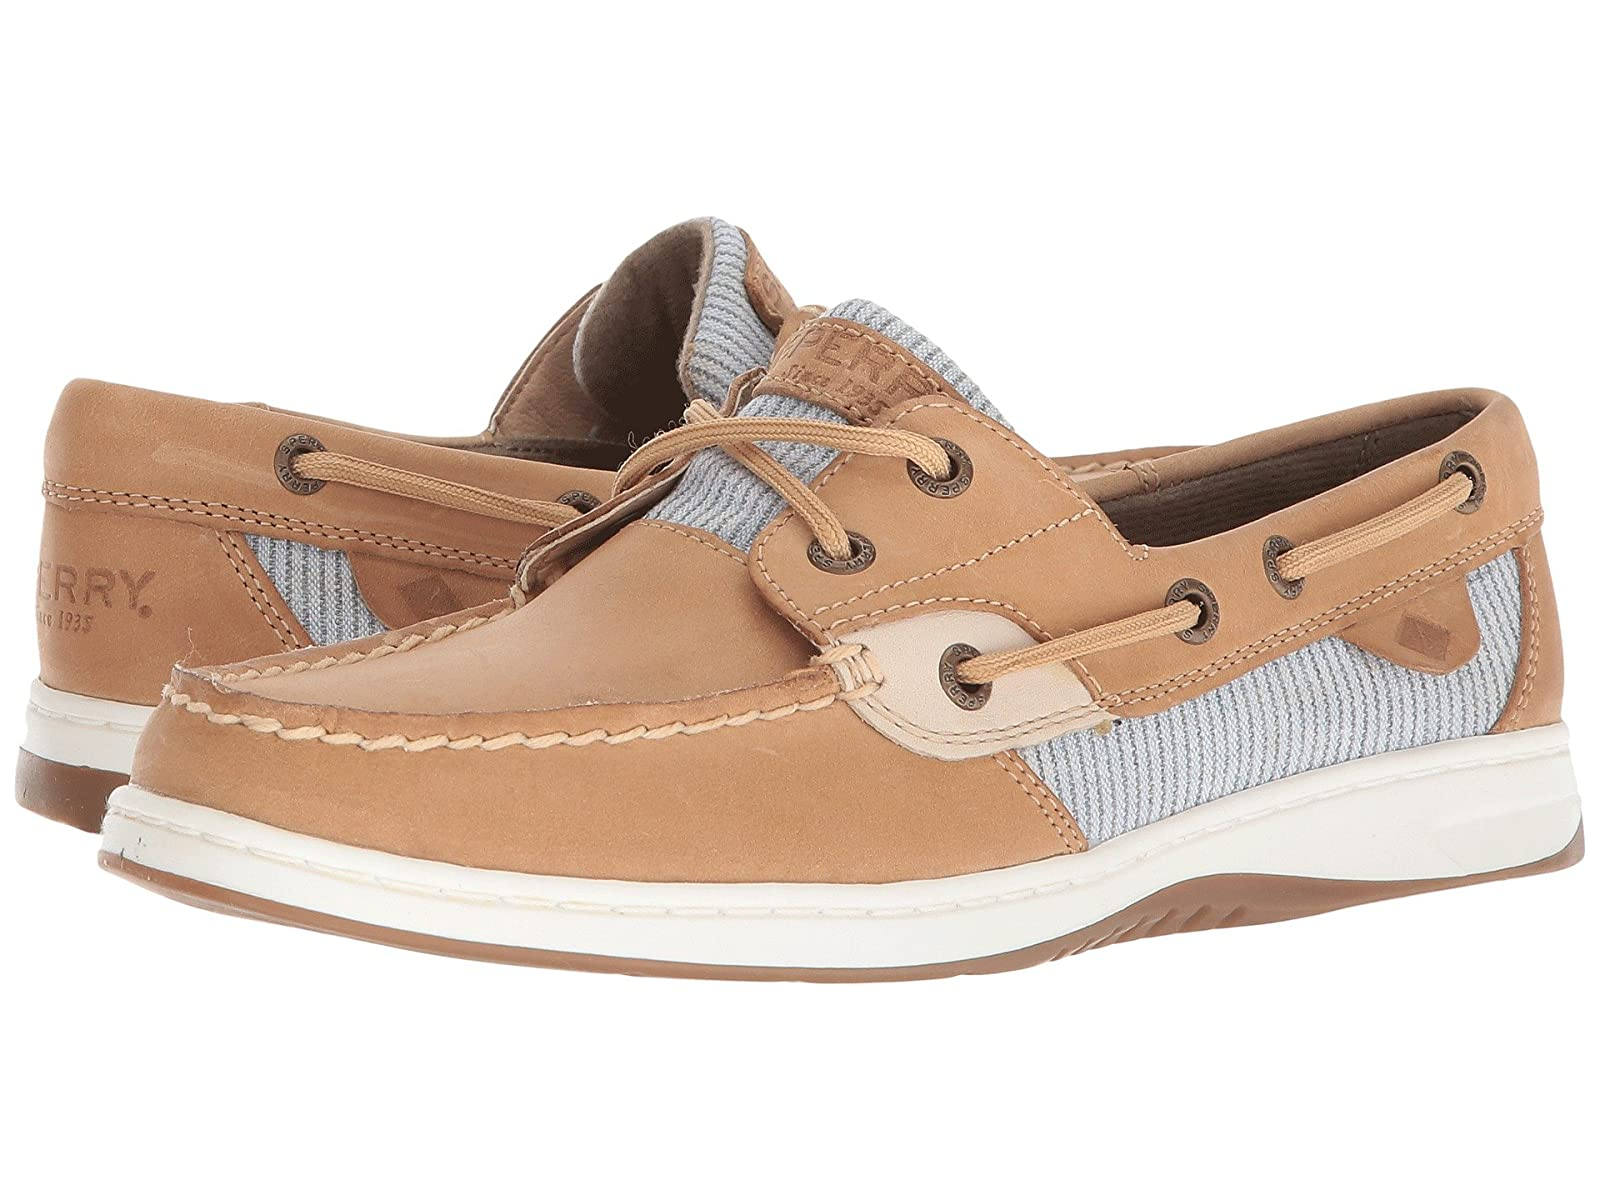 Sperry Bluefish Two-ToneCheap and distinctive eye-catching shoes